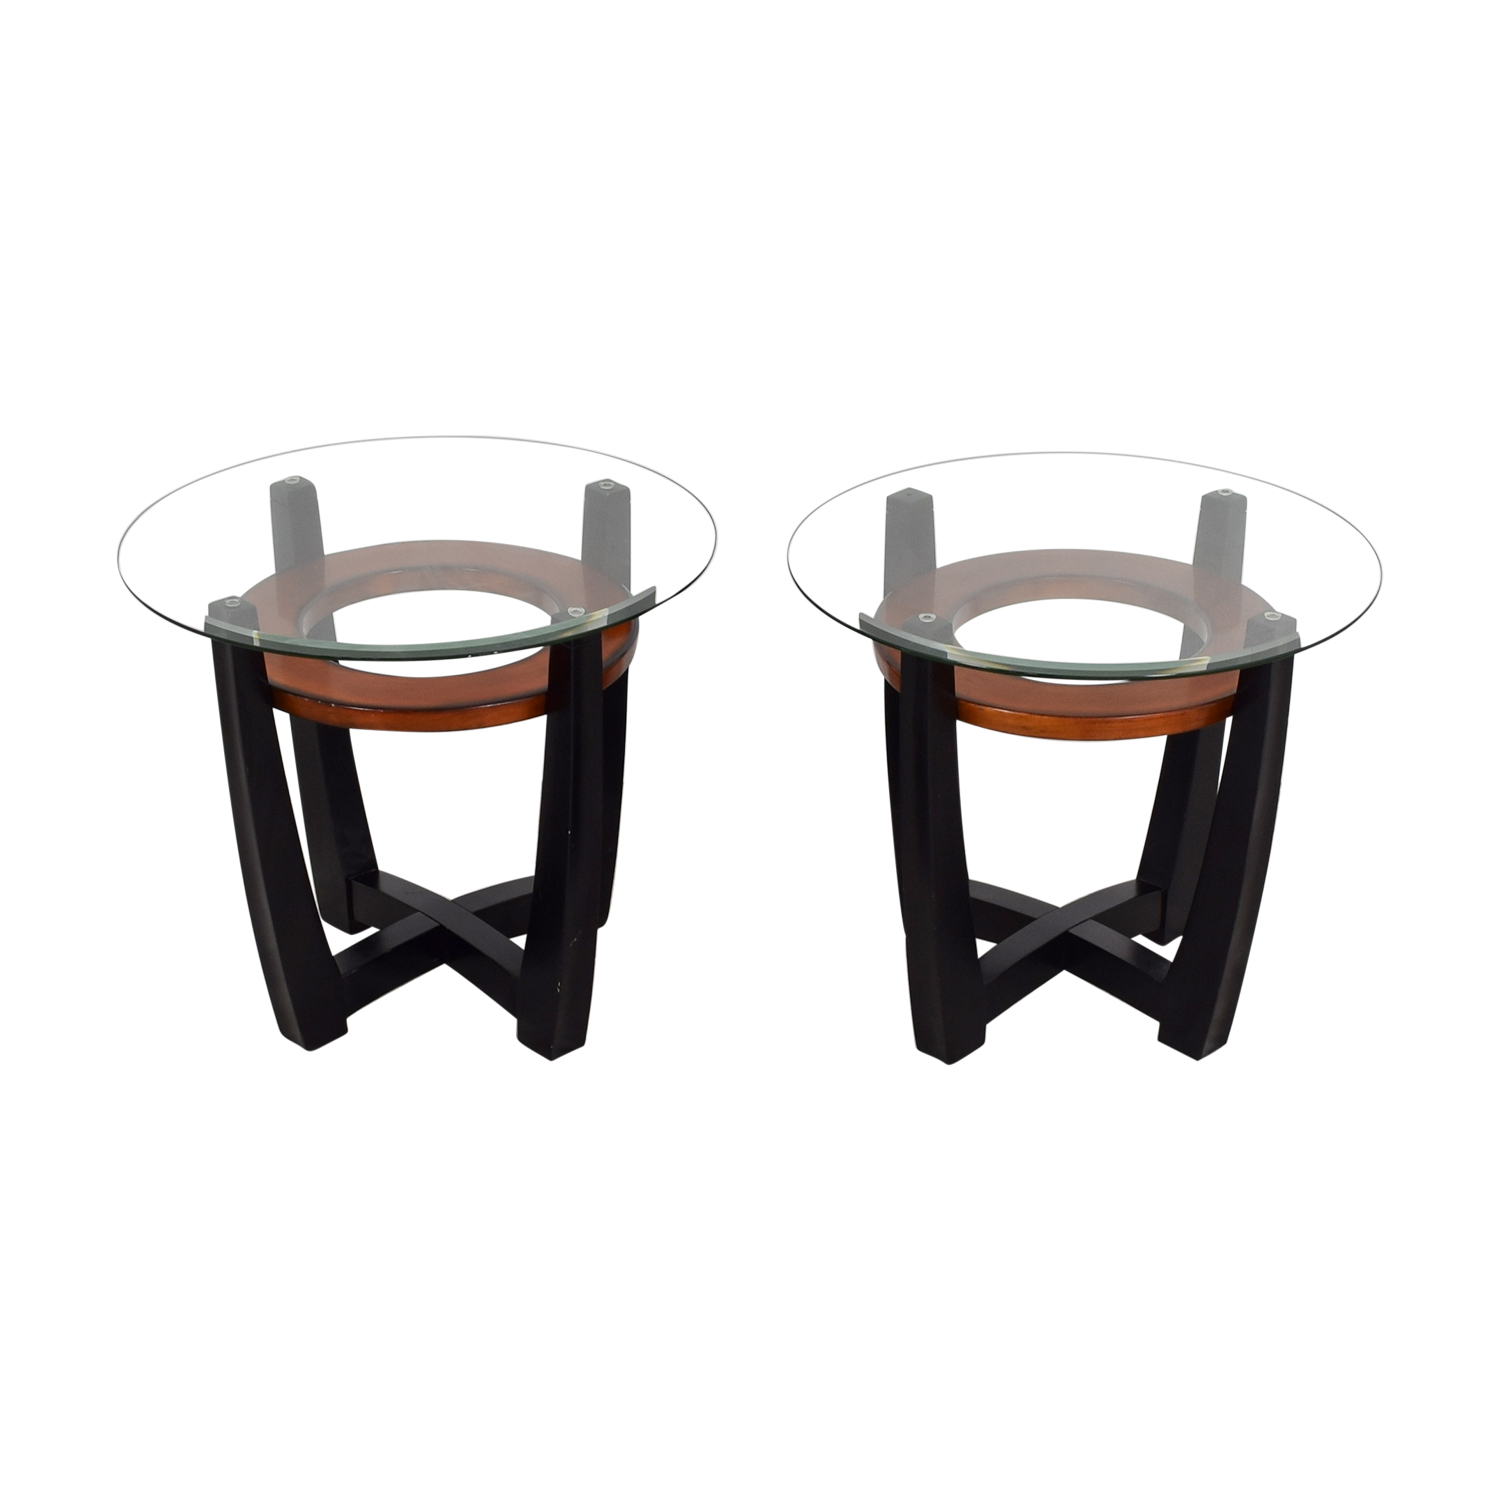 Elation Elation Round Glass and Wood End Tables dimensions